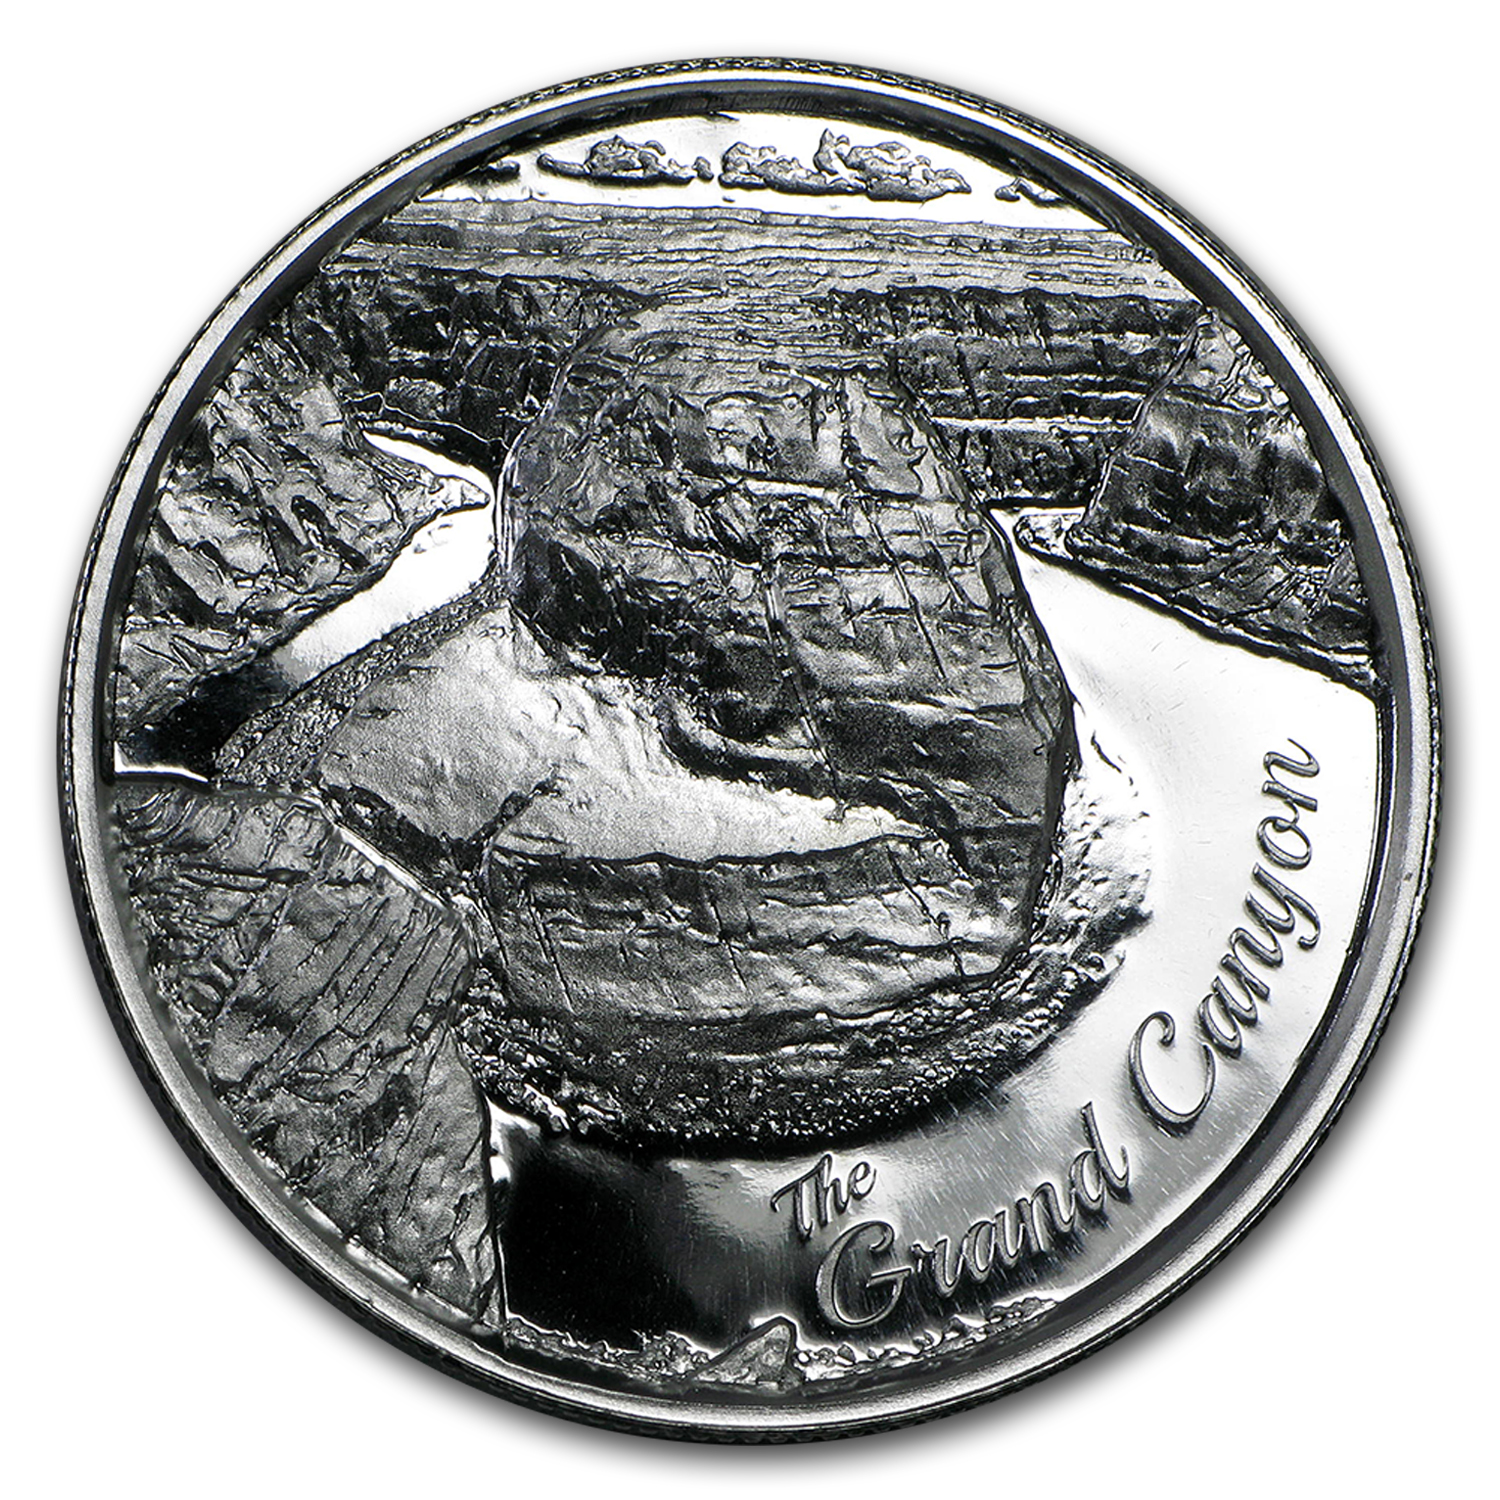 2 oz Silver Round - Grand Canyon